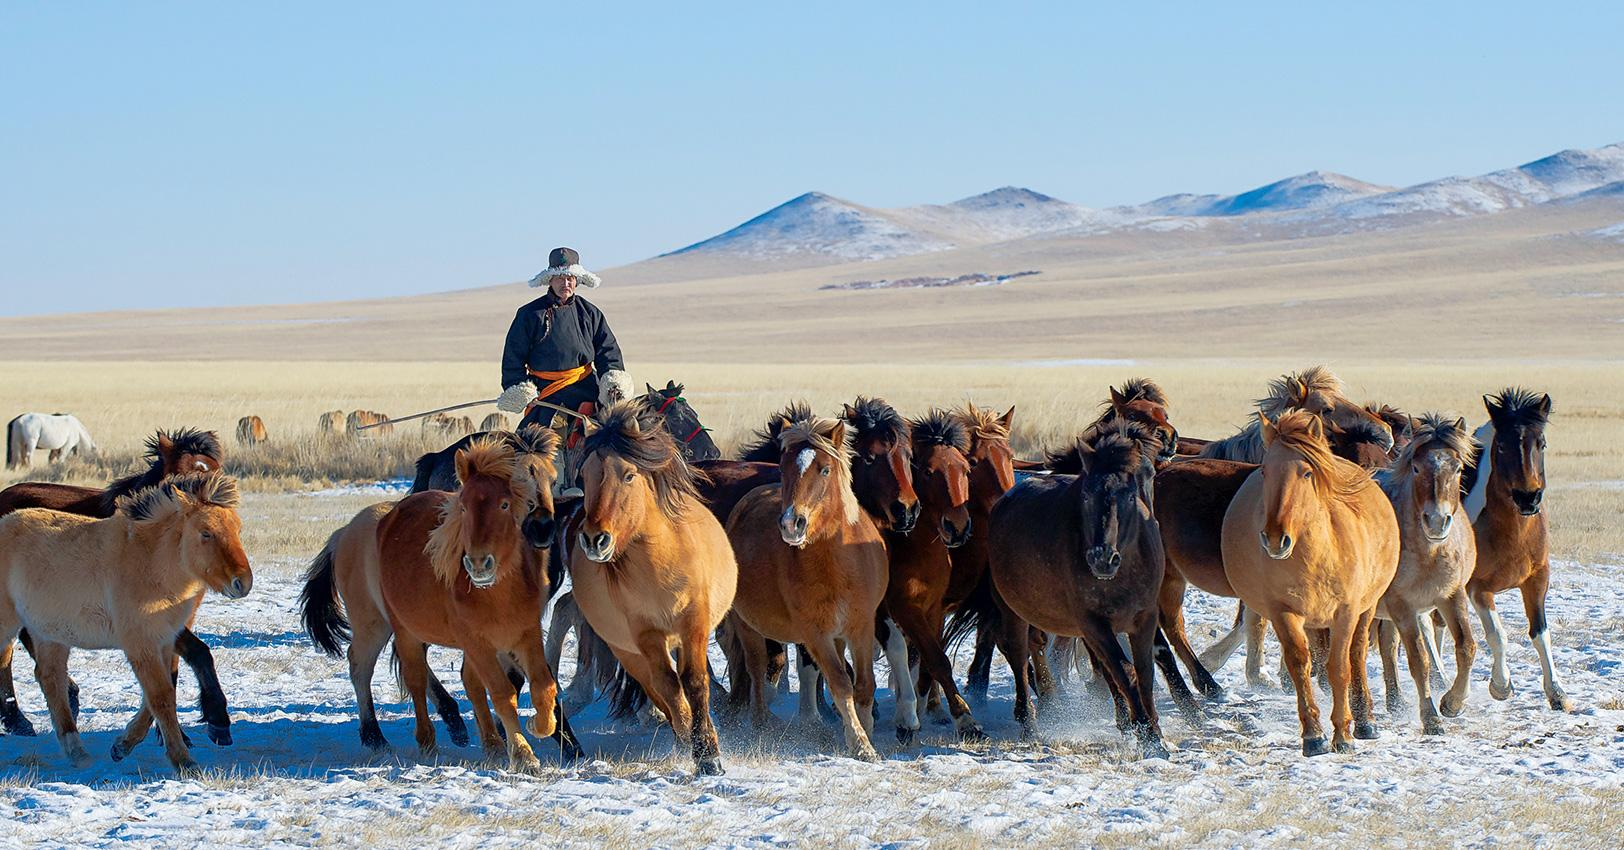 GM-Travel-SustainableTourismCountries-Mongolia-1525374370180.jpg